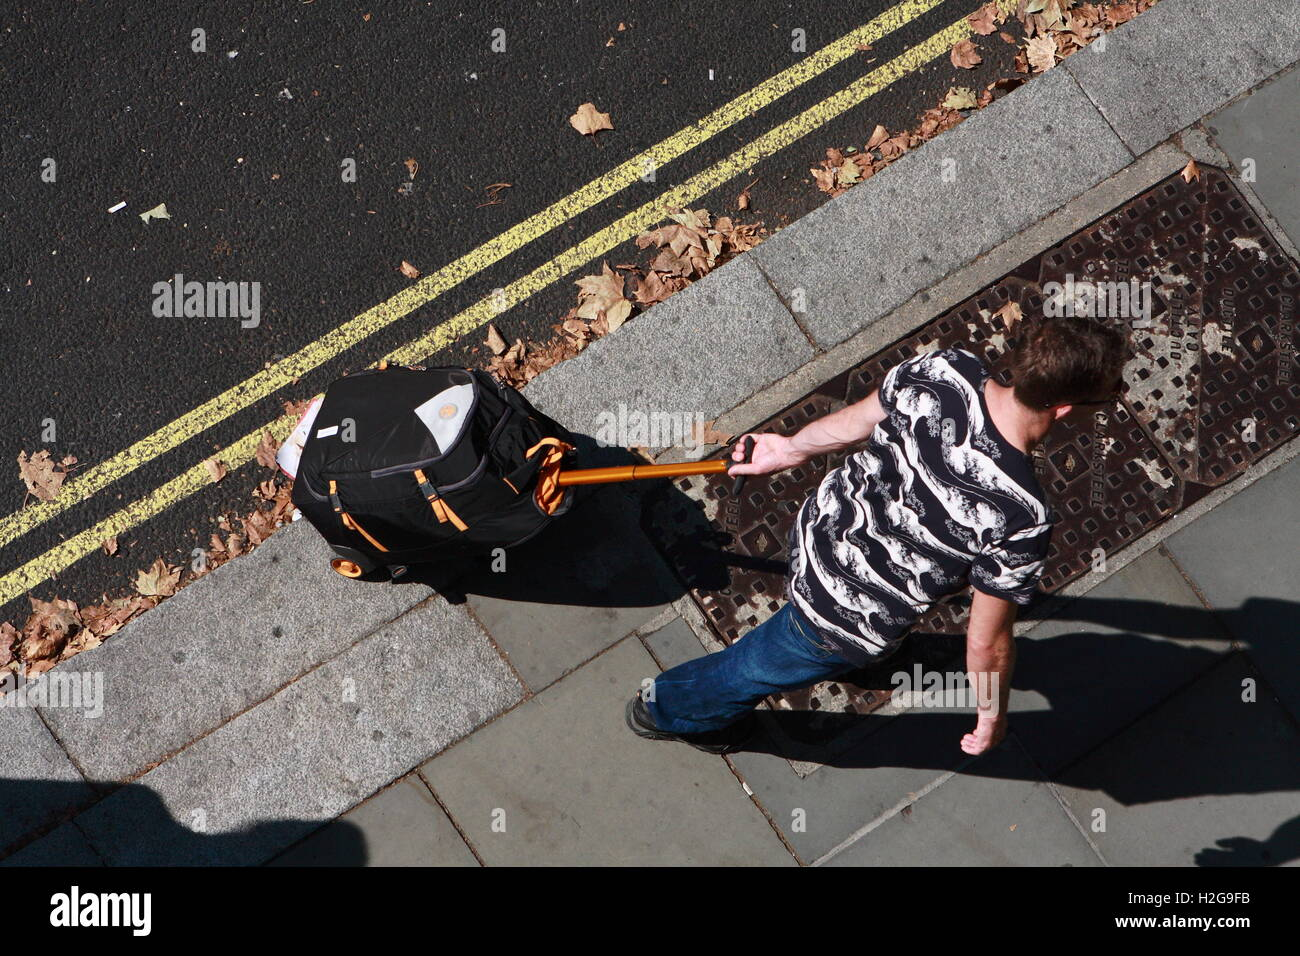 Looking down on a male pulling a wheeled suitcase along a pavement in London, England. Stock Photo